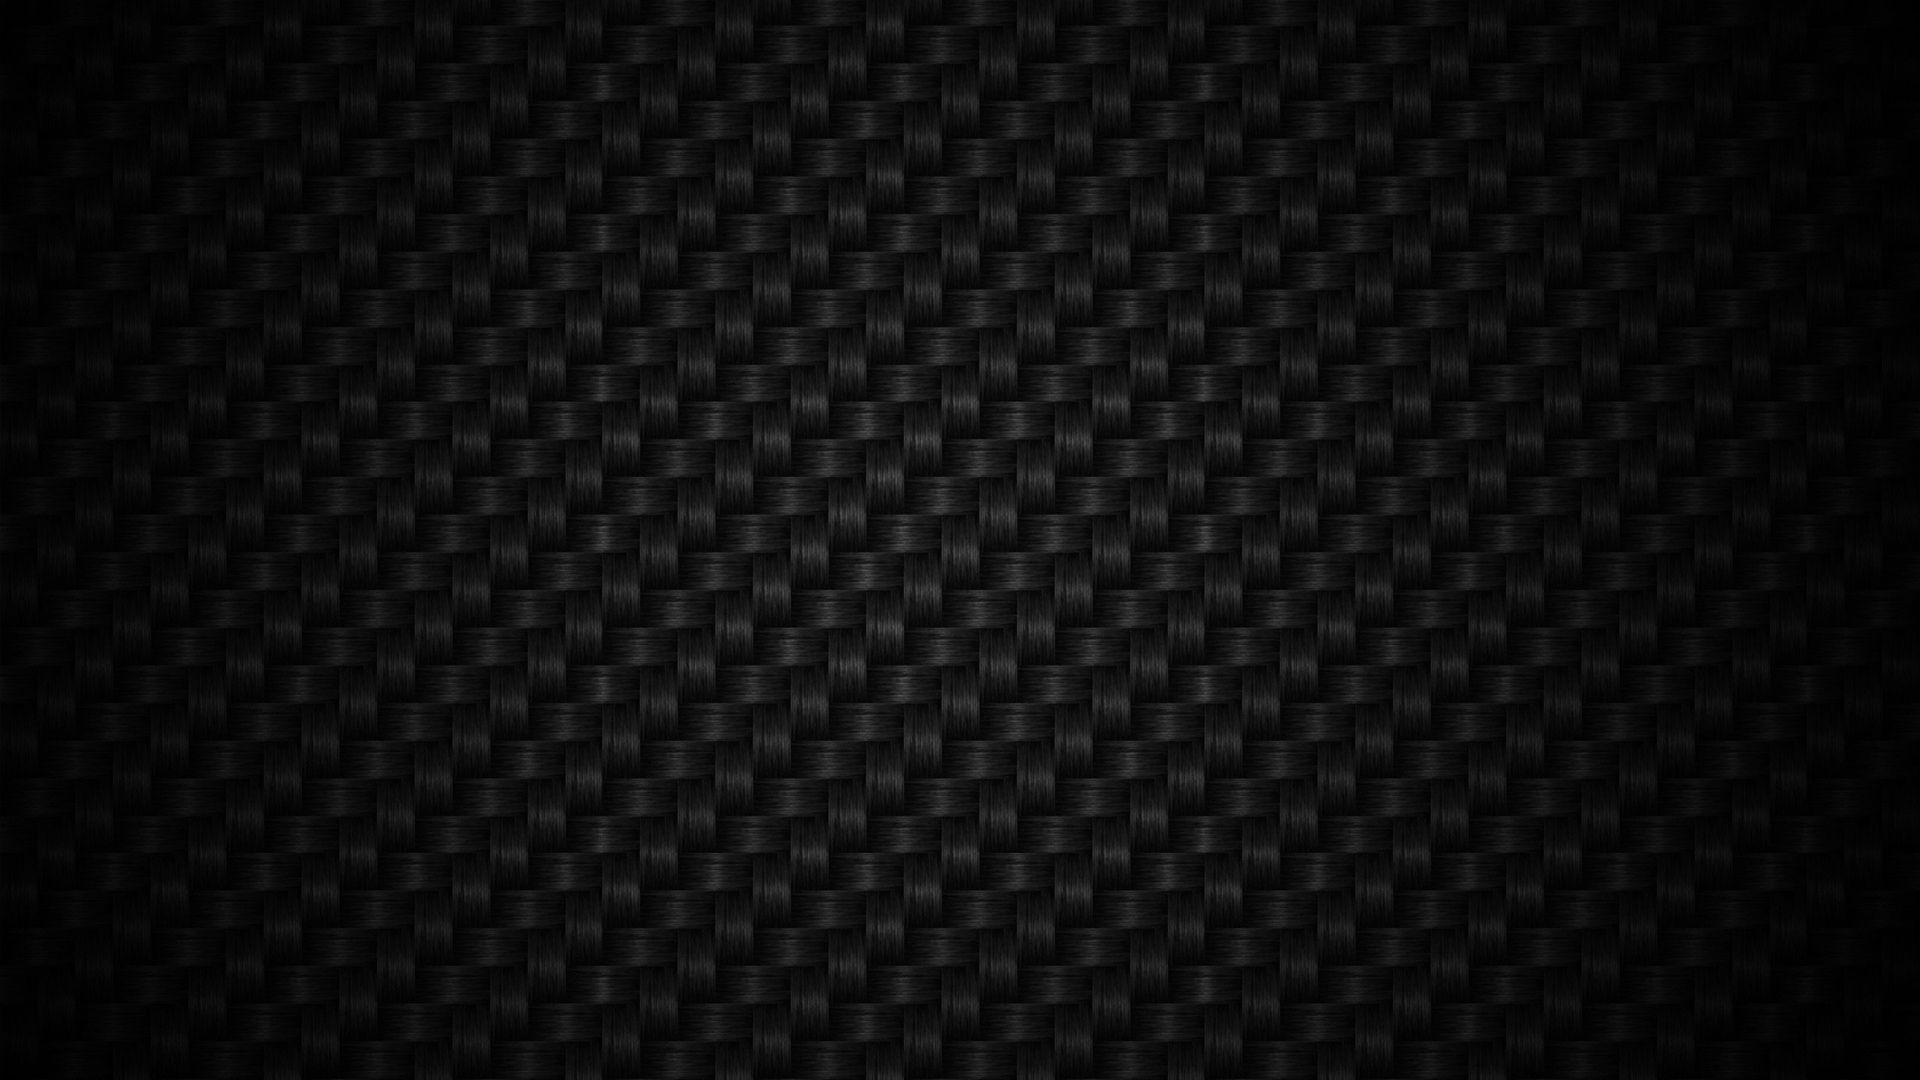 Plain Black desktop